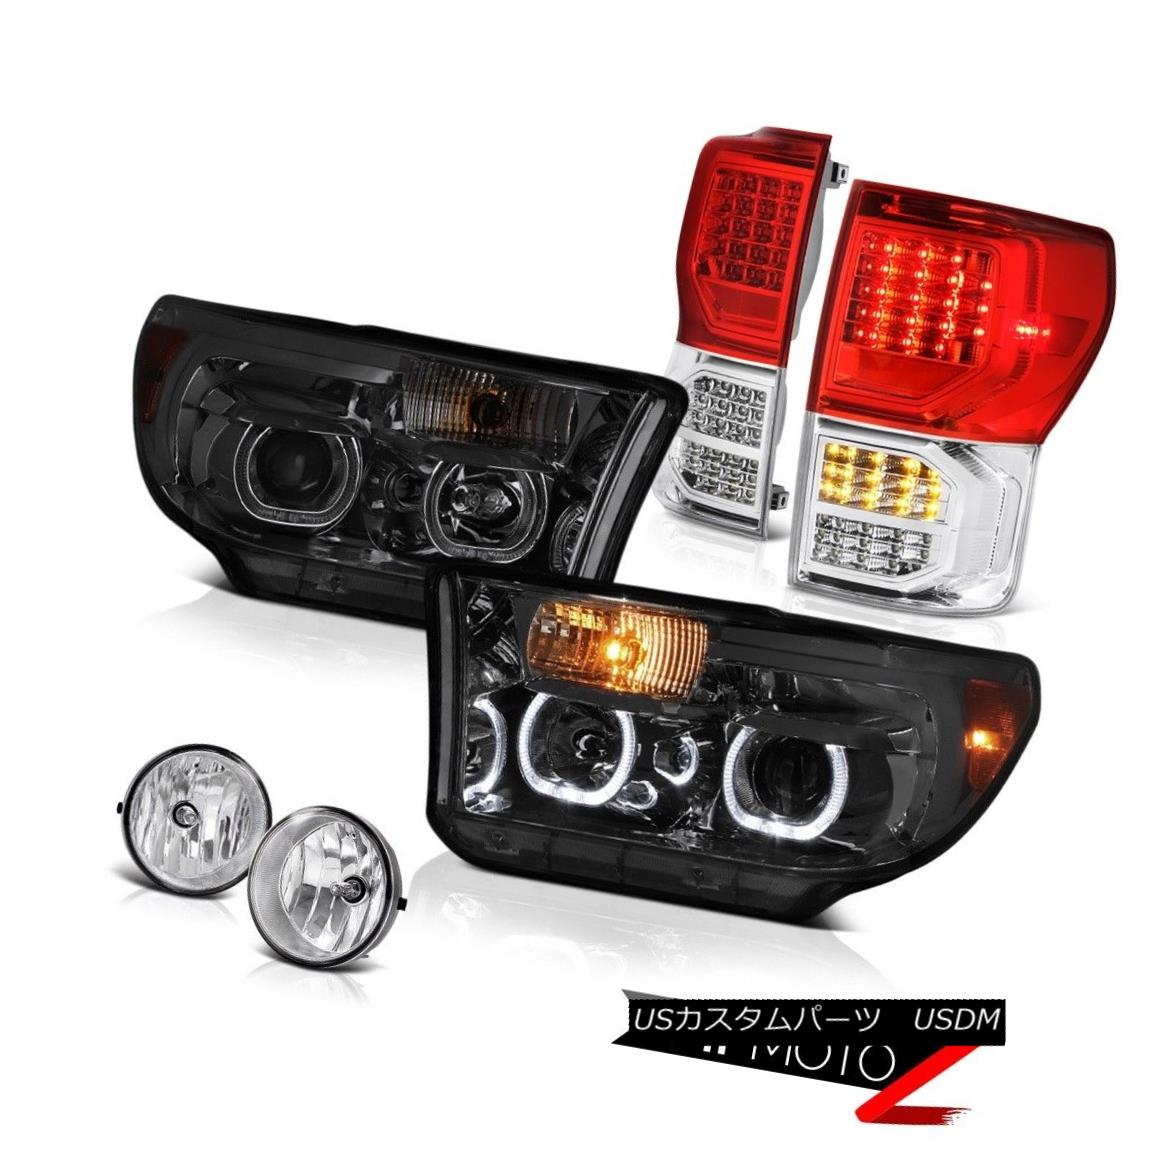 テールライト 07-13 Toyota Tundra Platinum Red Tail Lights Smokey Headlamps Fog